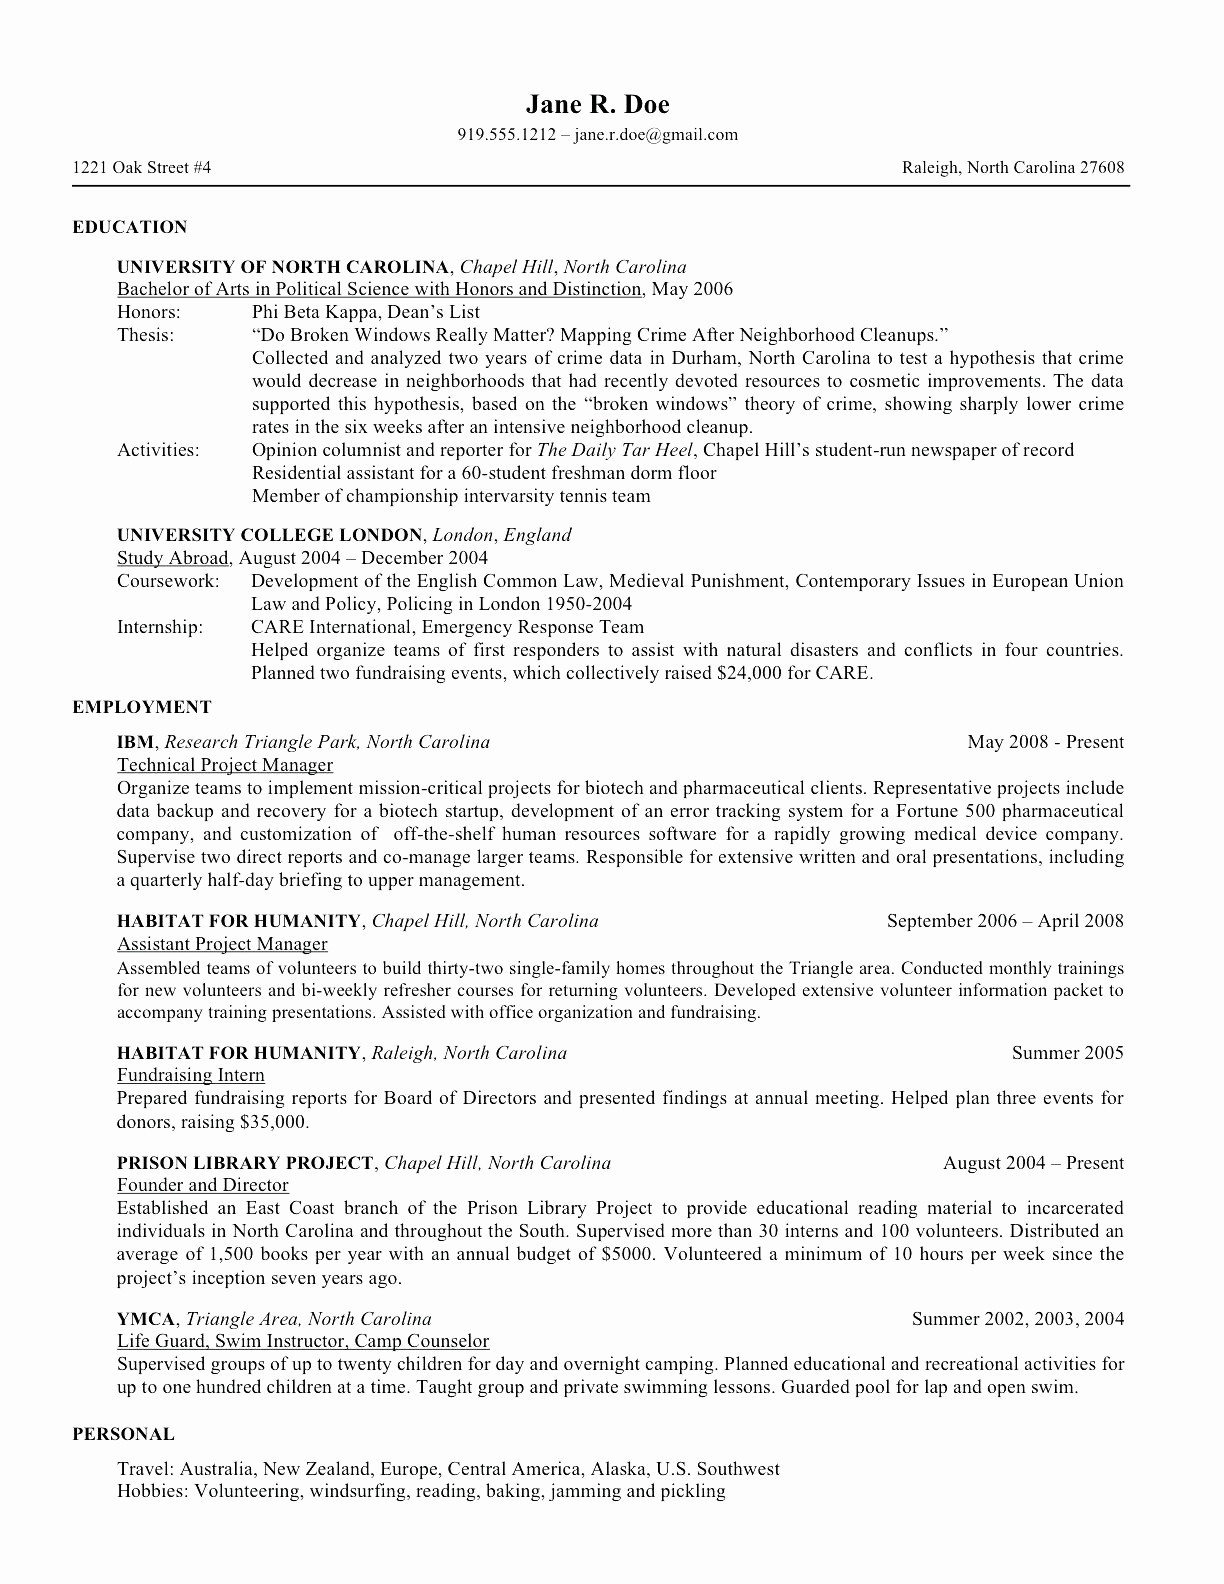 Resume for Summer Internship - Internship Resume Template Best Summer Internship Resume Template